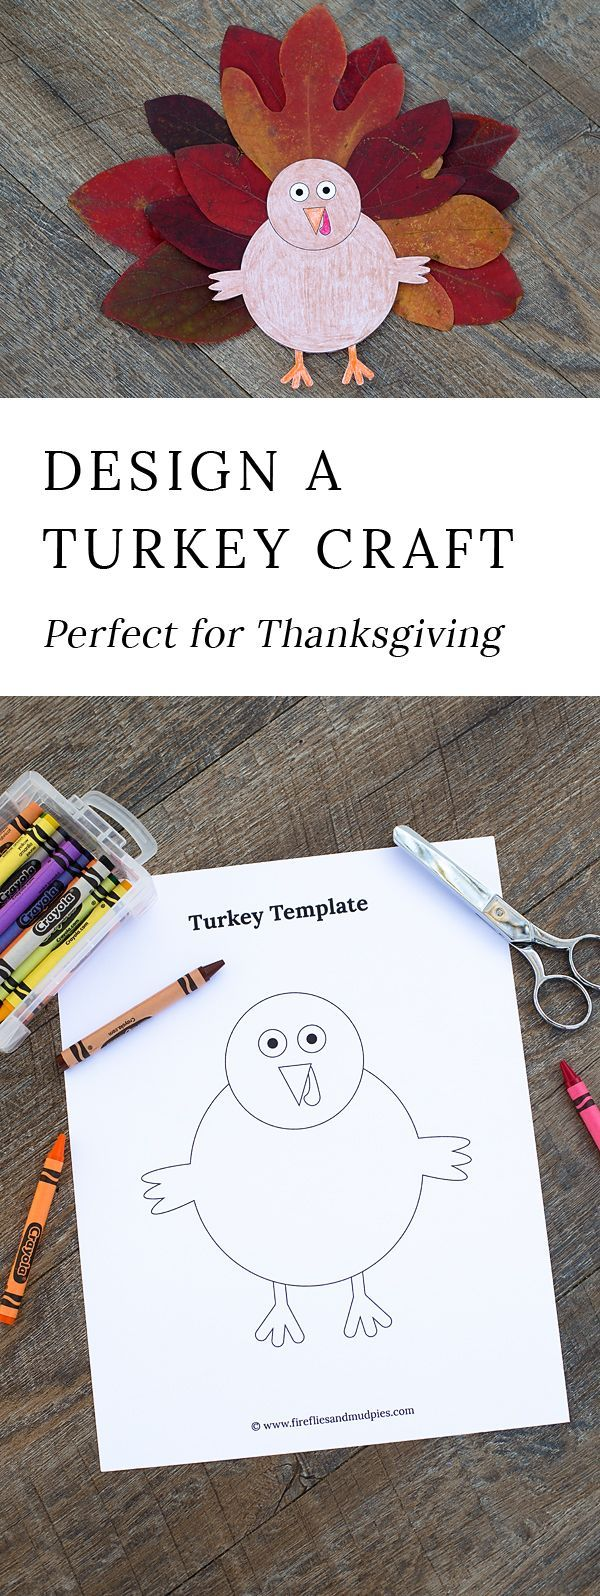 November is the perfect month for turkey crafts! Whether kids are learning about turkeys or Thanksgiving, or simply enjoying a fall craftivity at home, this open-ended Thanksgiving craft is a fun way to extend your fall or Thanksgiving unit. #thanksgiving #turkeycrafts #printablecrafts